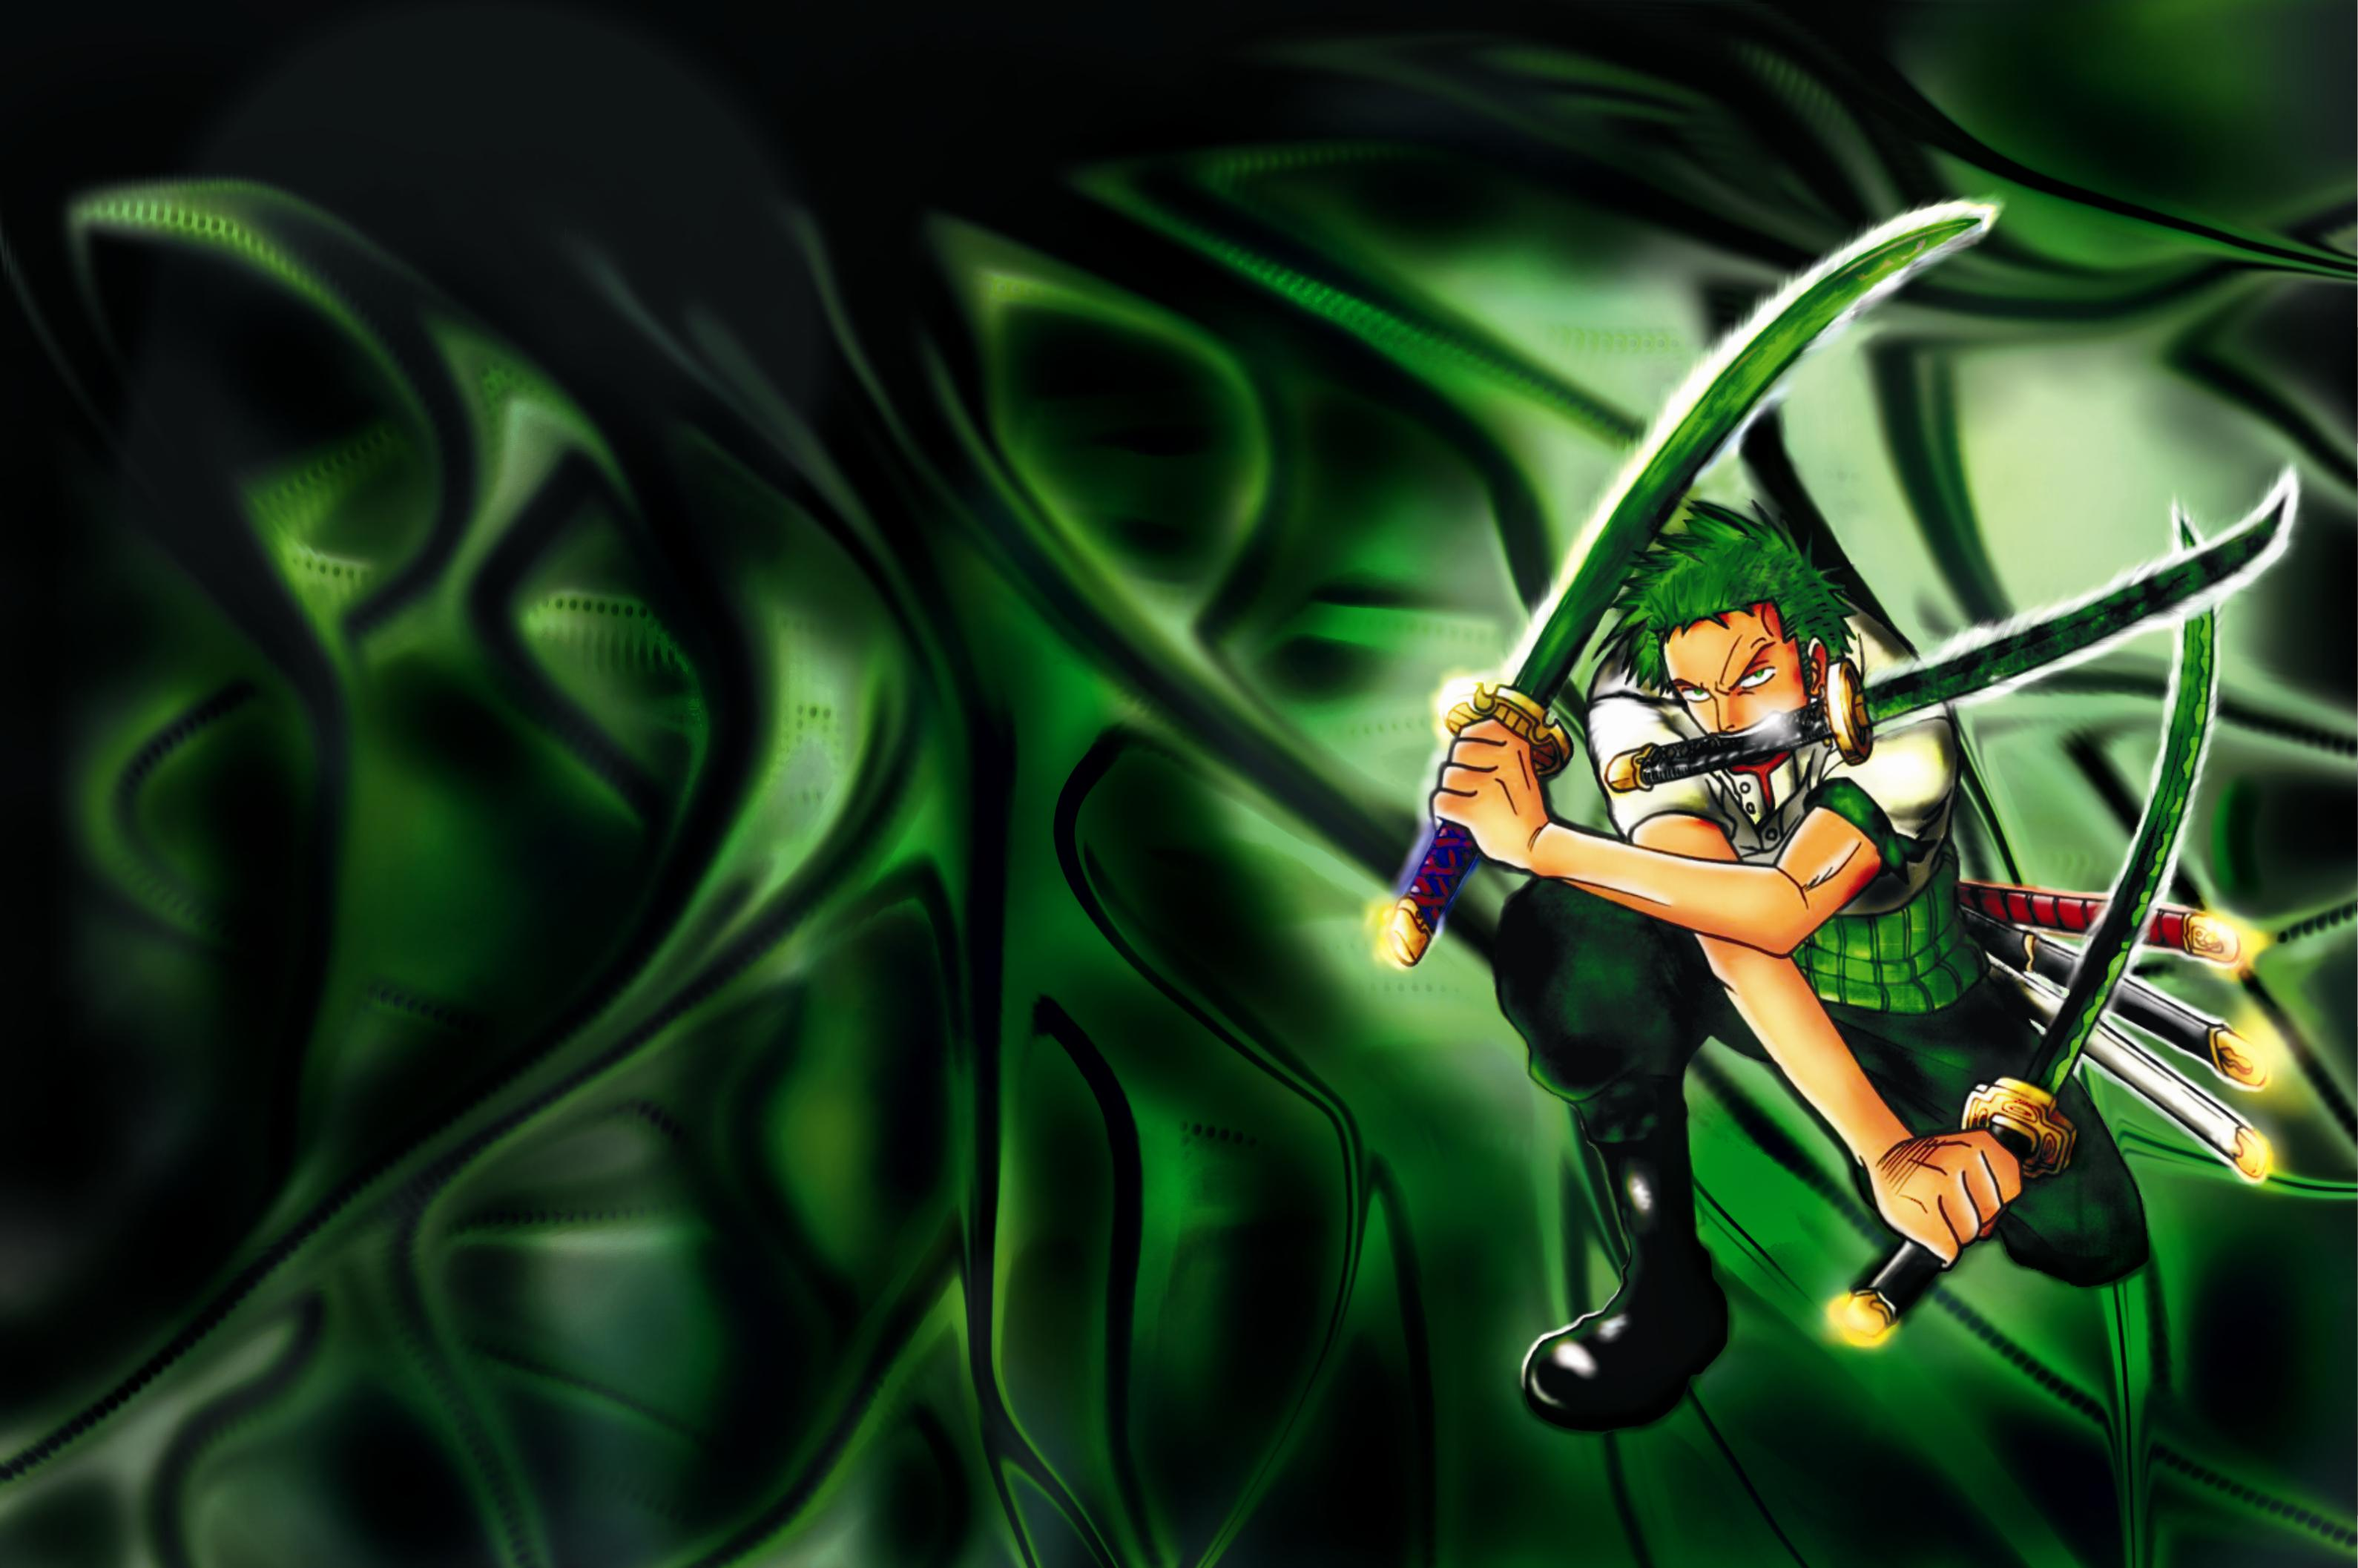 wallpaper one piece hd 1366x768